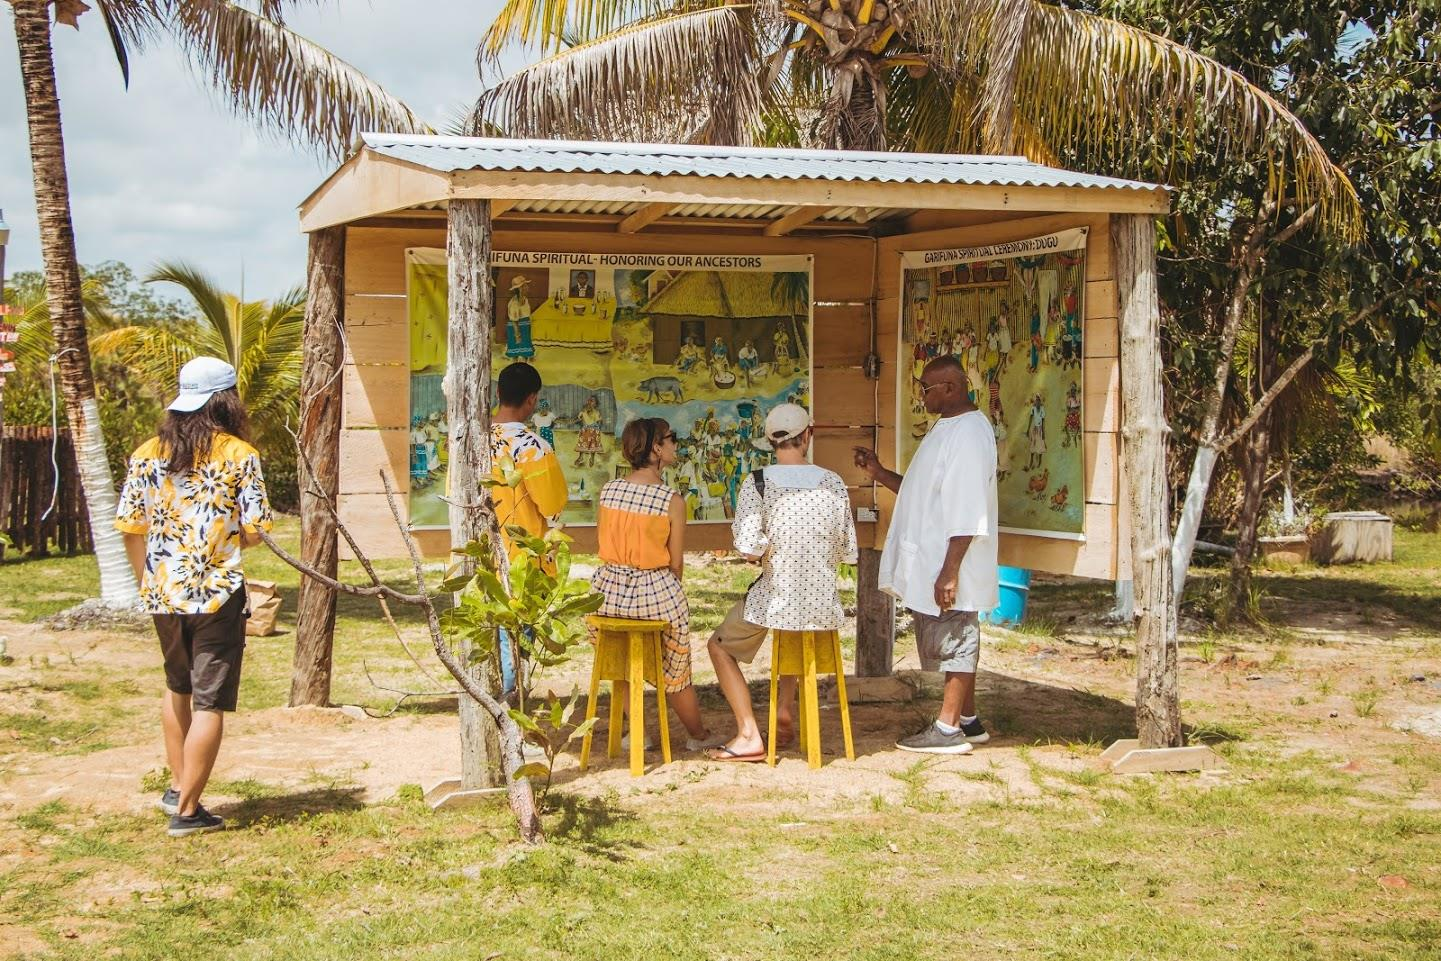 The Journey and History of the Garifuna